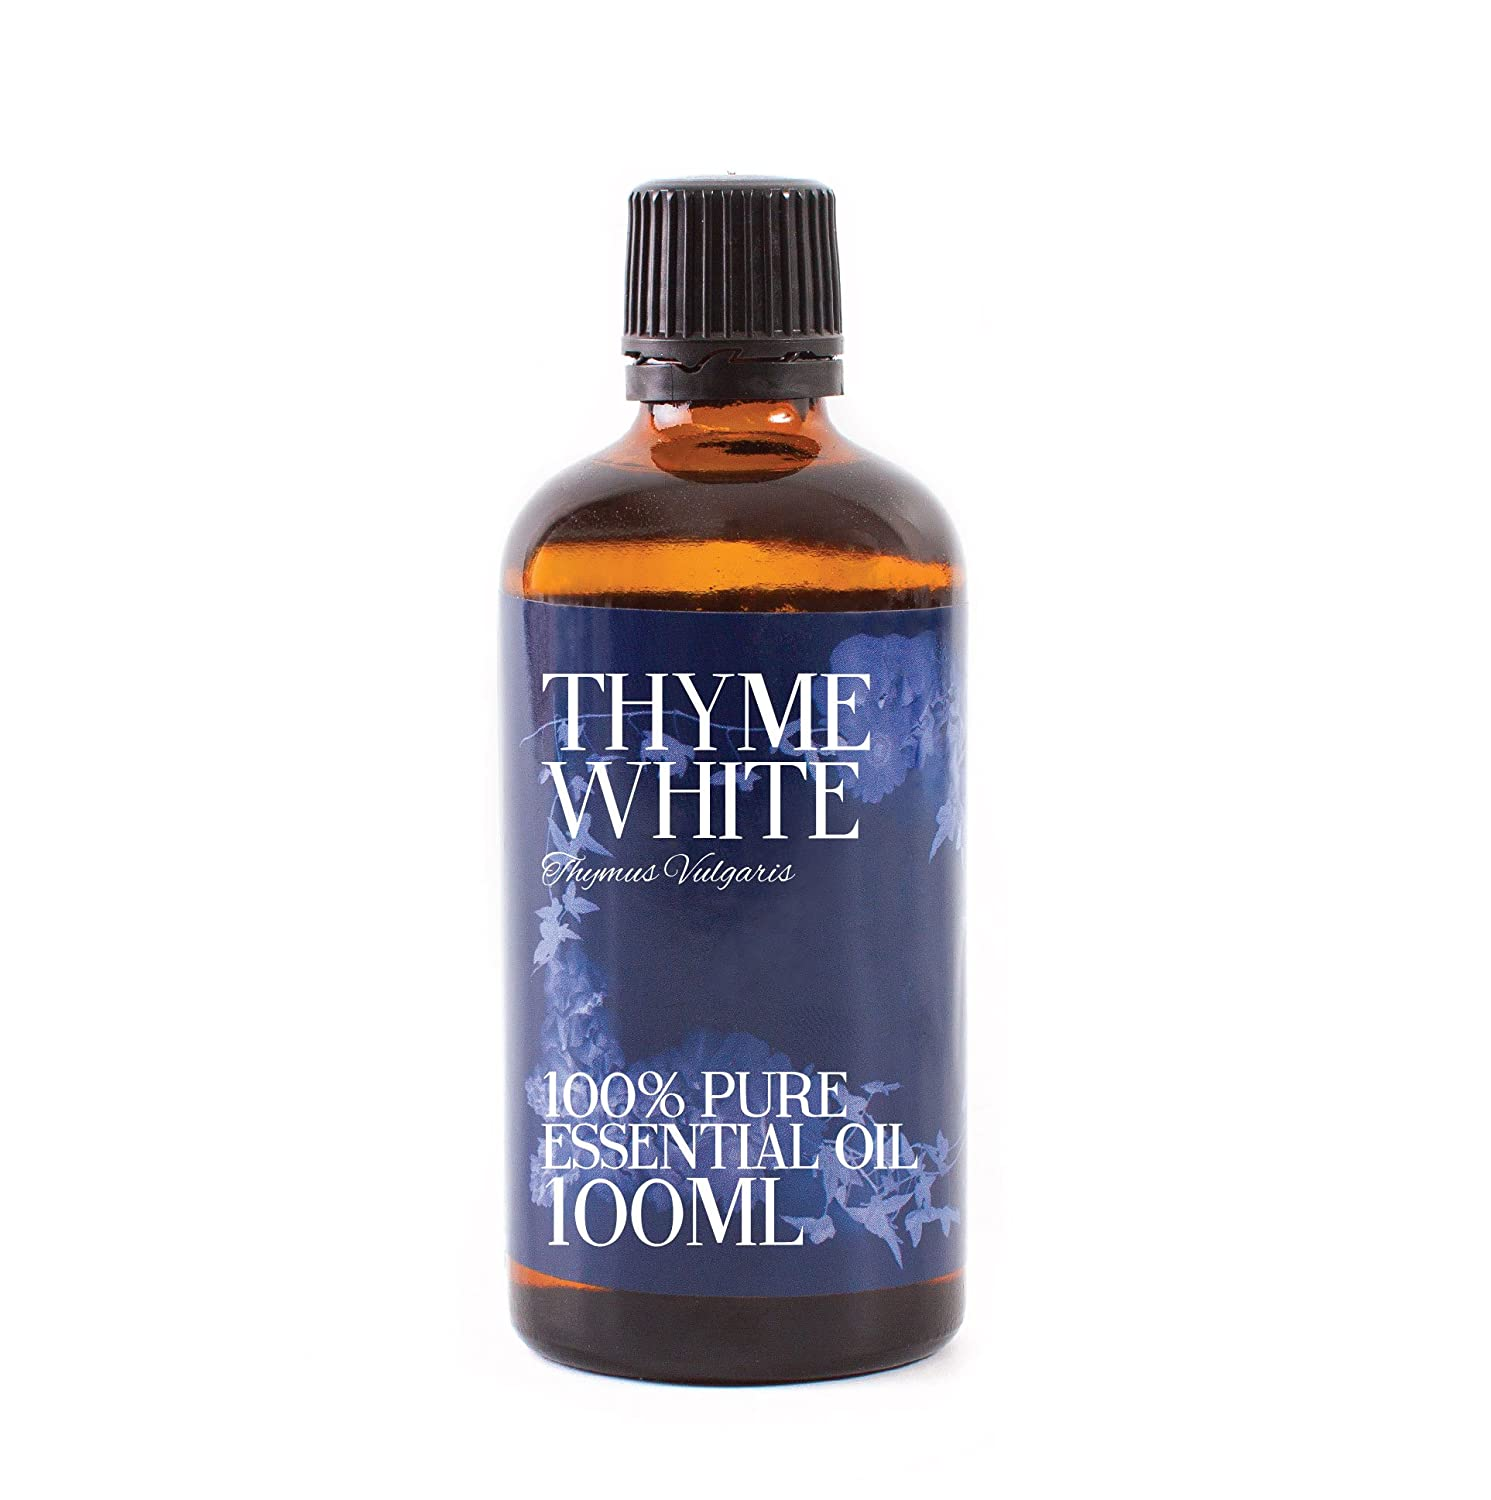 Mystic Moments Aceite Esencial De Tomillo - 100ml - 100% Puro EOTHYME100